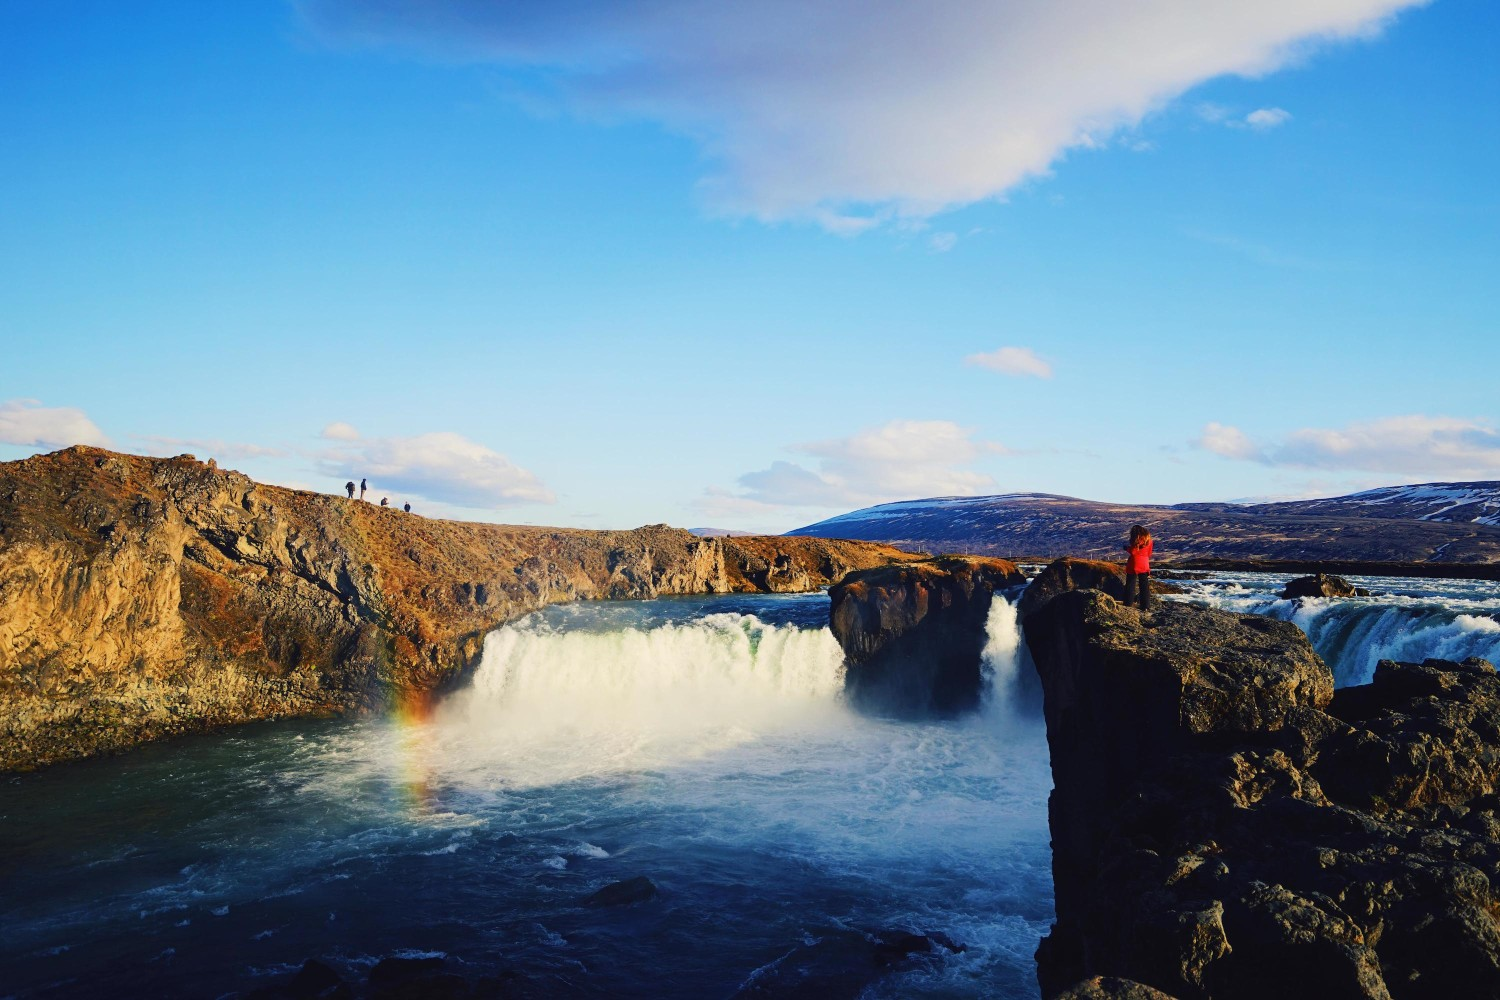 goðafoss-3-waterfall-iceland-dante-vincent-photography-64